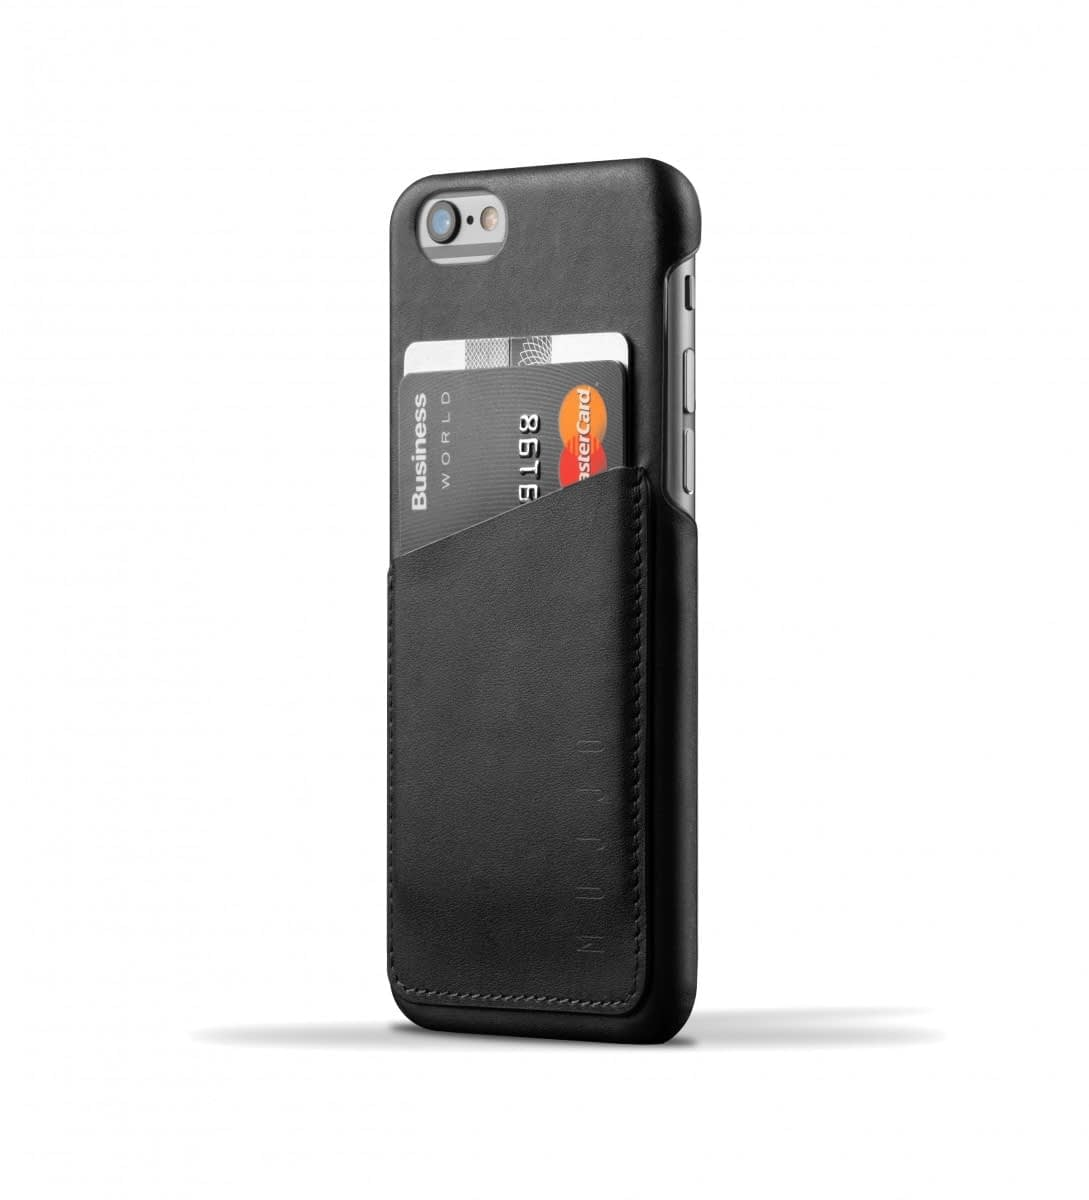 leather wallet case for iphone 6s black 1089x1200